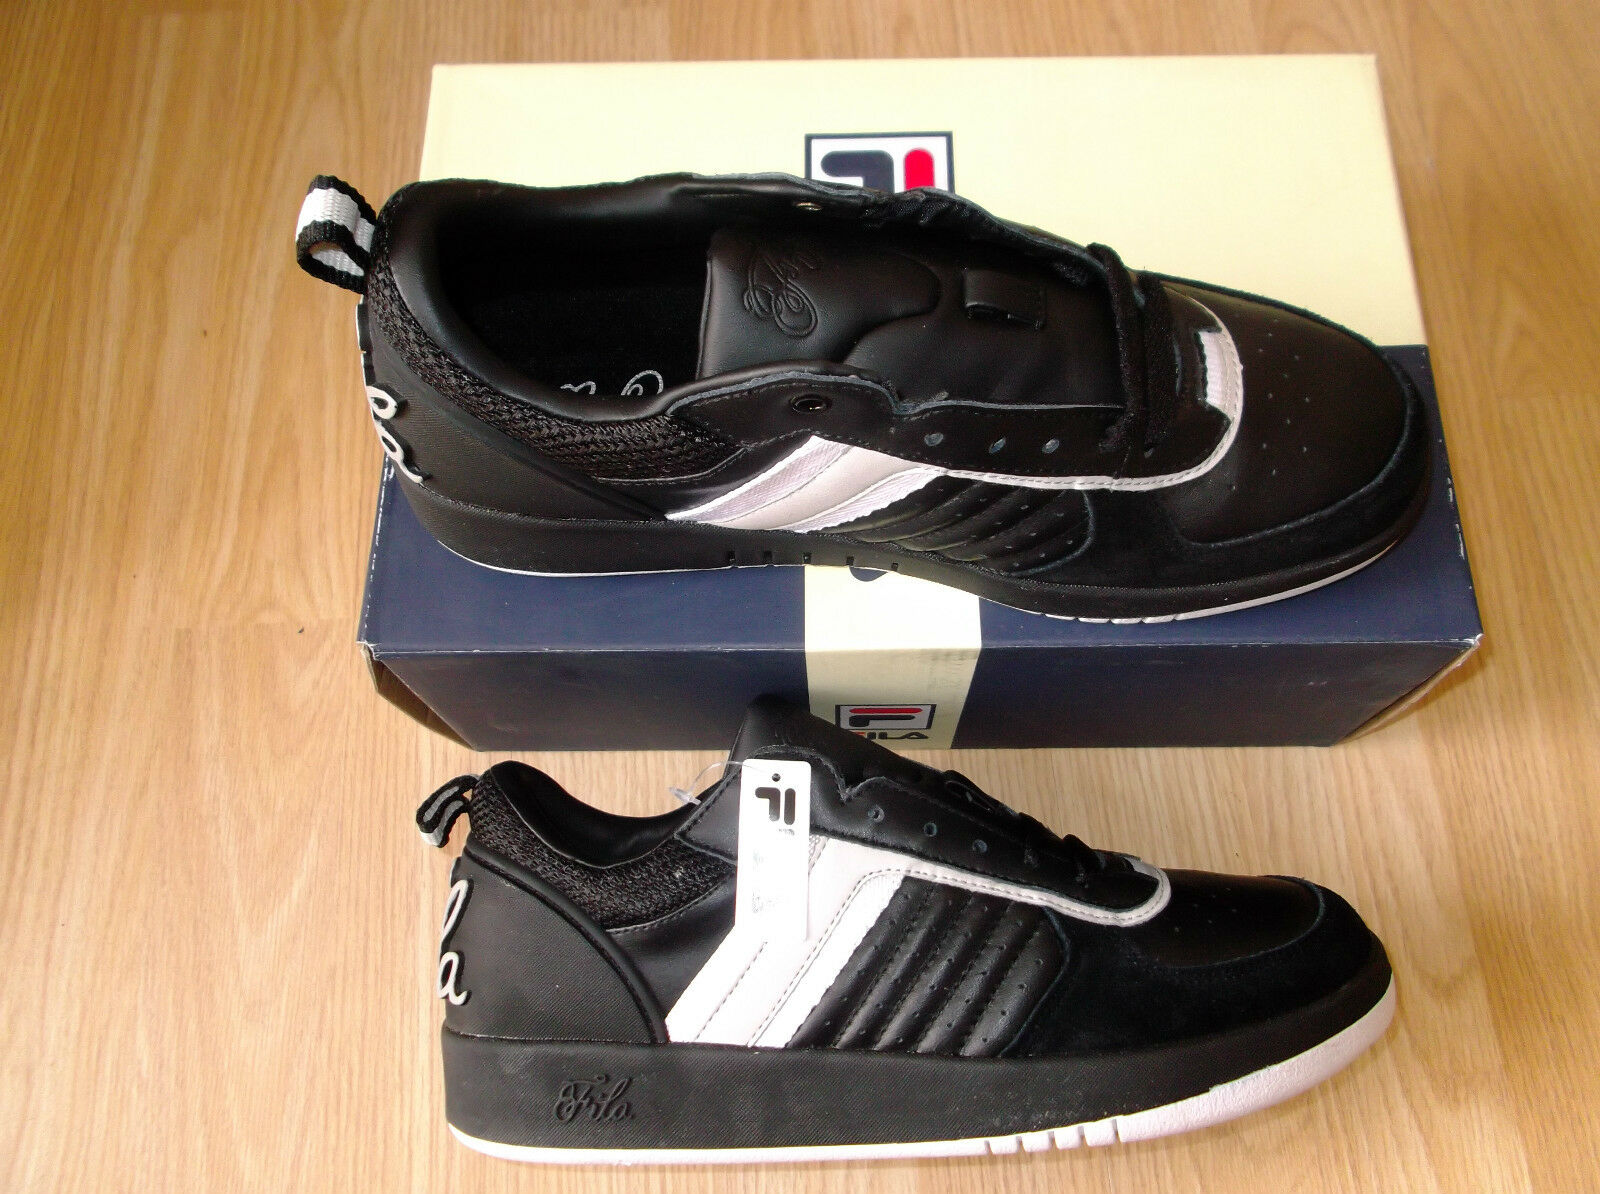 NEW MENS FILA SIGNATURE EXCLUSIVE TRAINERS BLACK SIZE 7 EURO 41 The most popular shoes for men and women